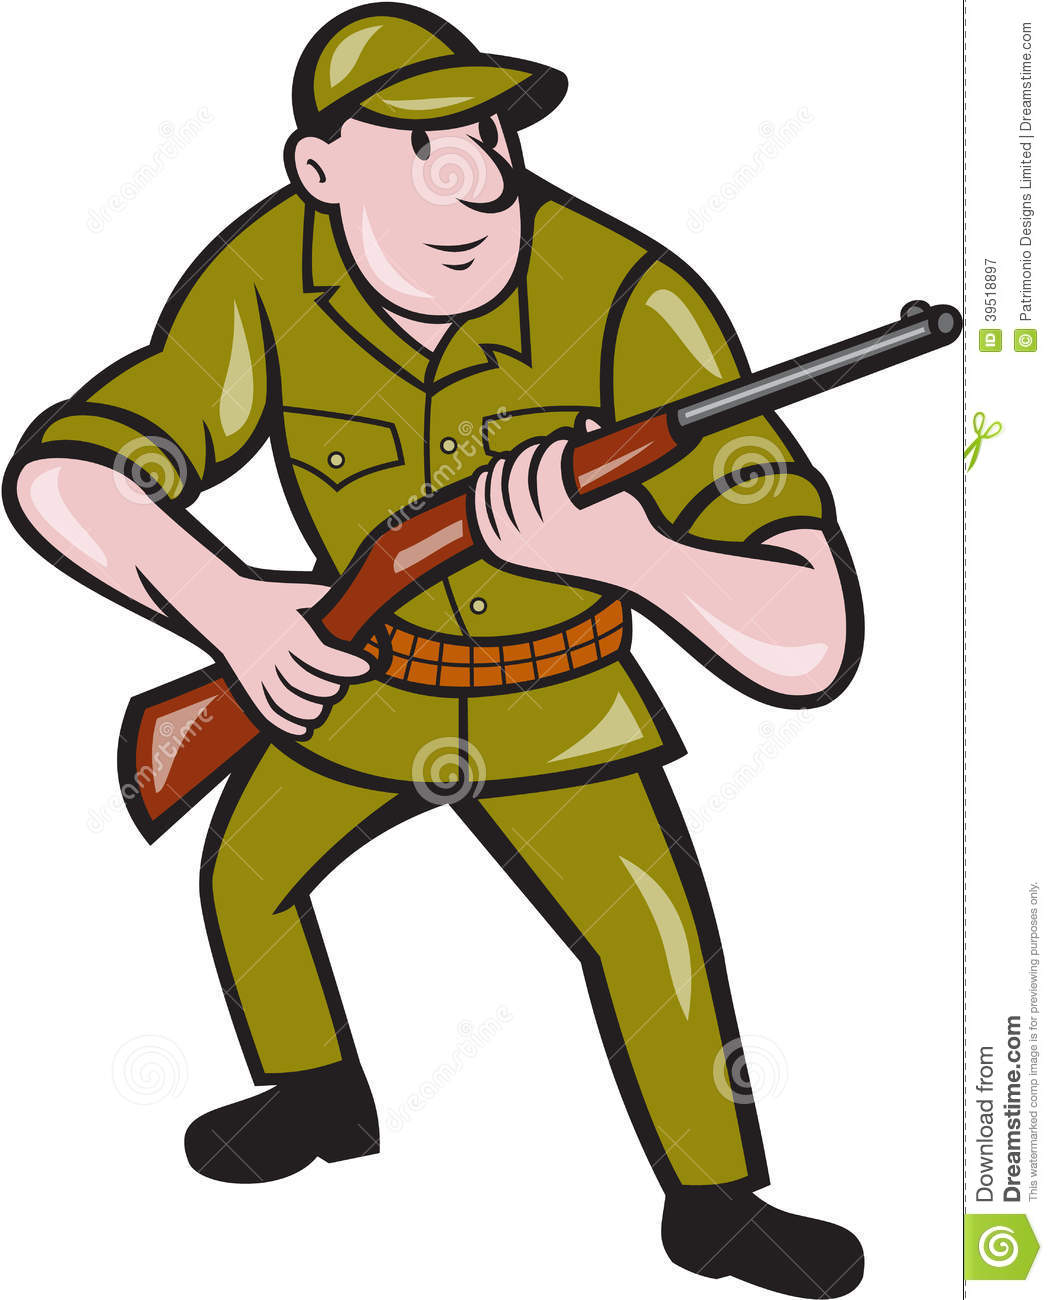 Illustration of a hunter carrying rifle facing front on isolated